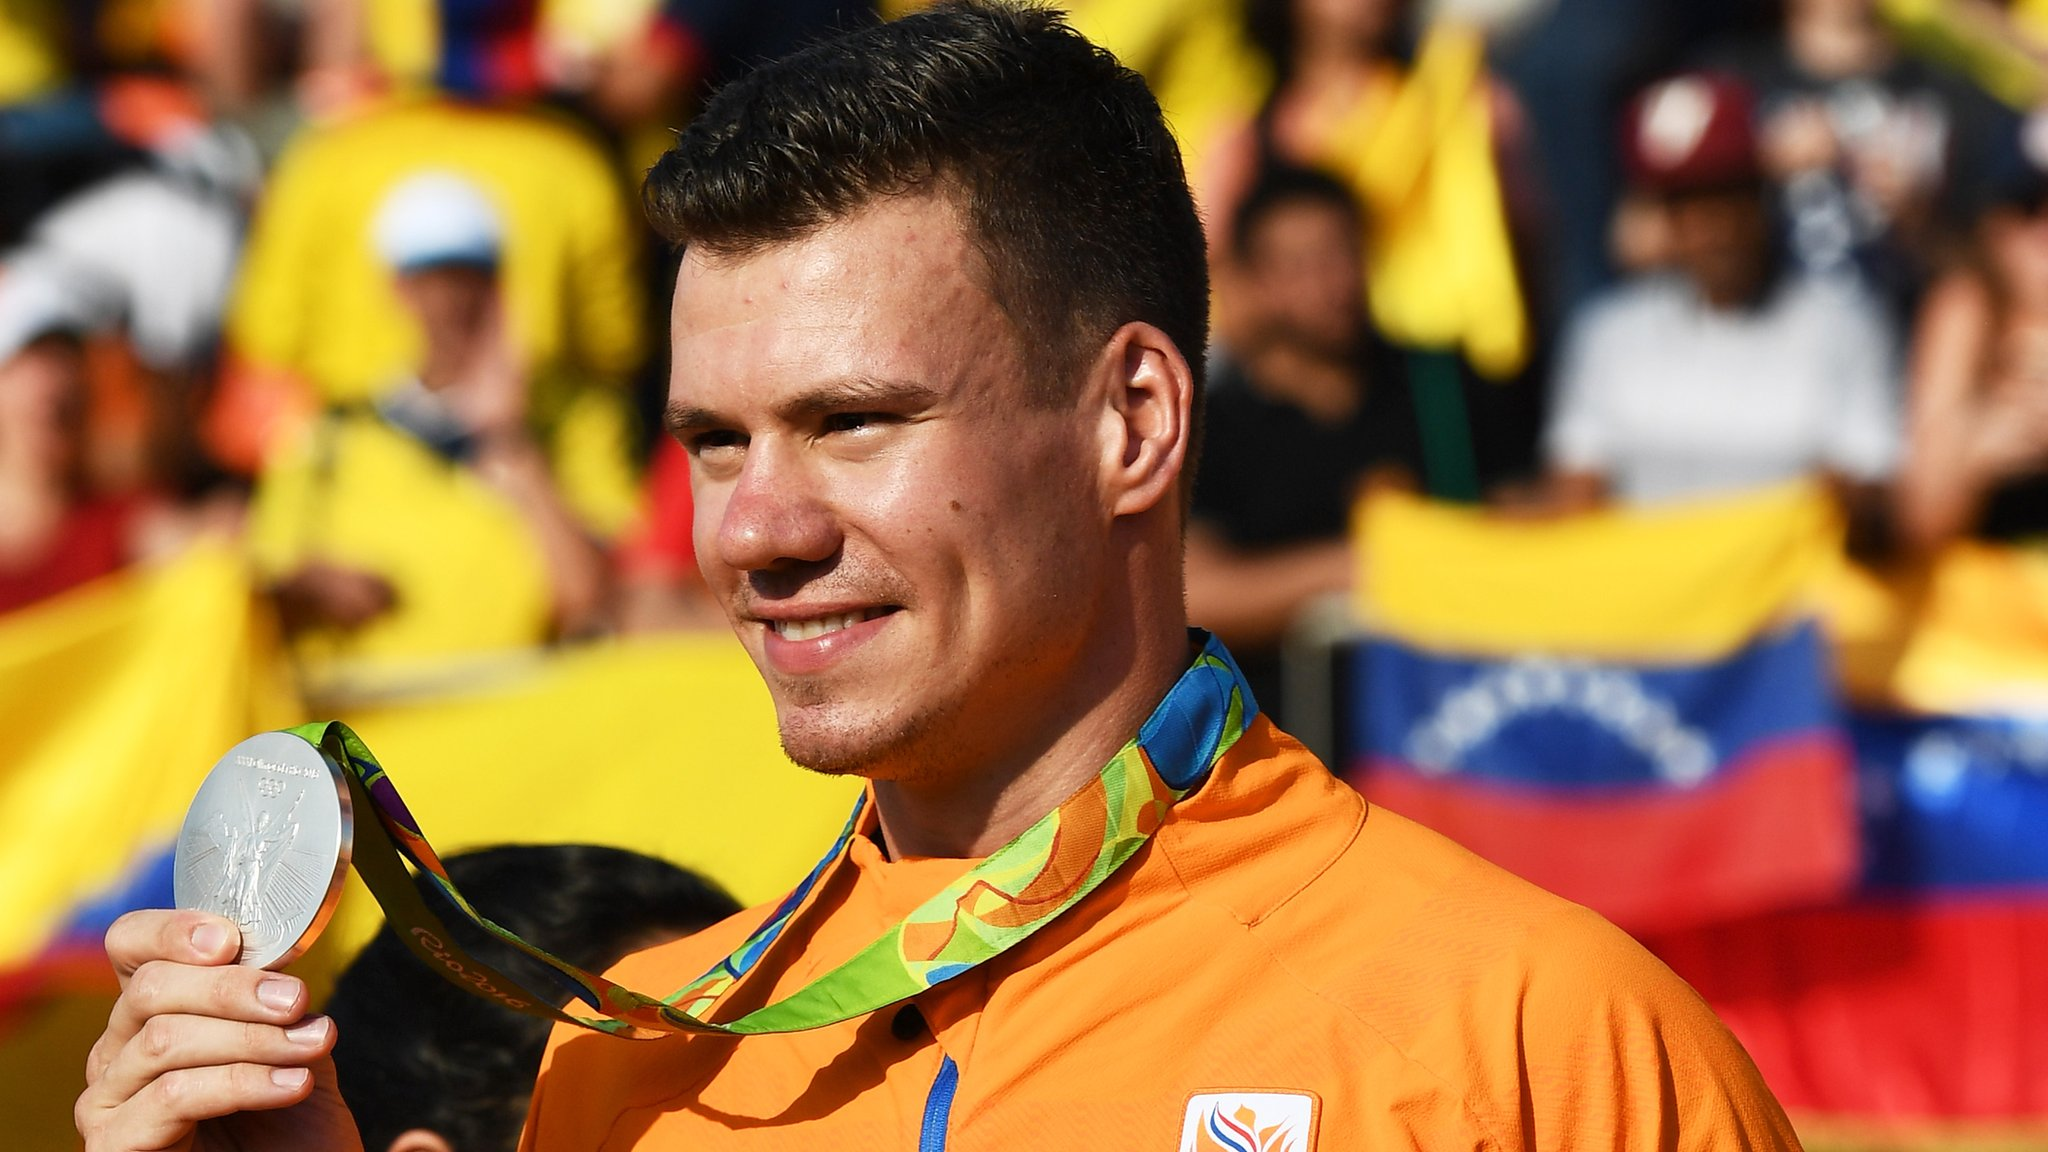 'Impossible to estimate' when Van Gorkom will wake from coma